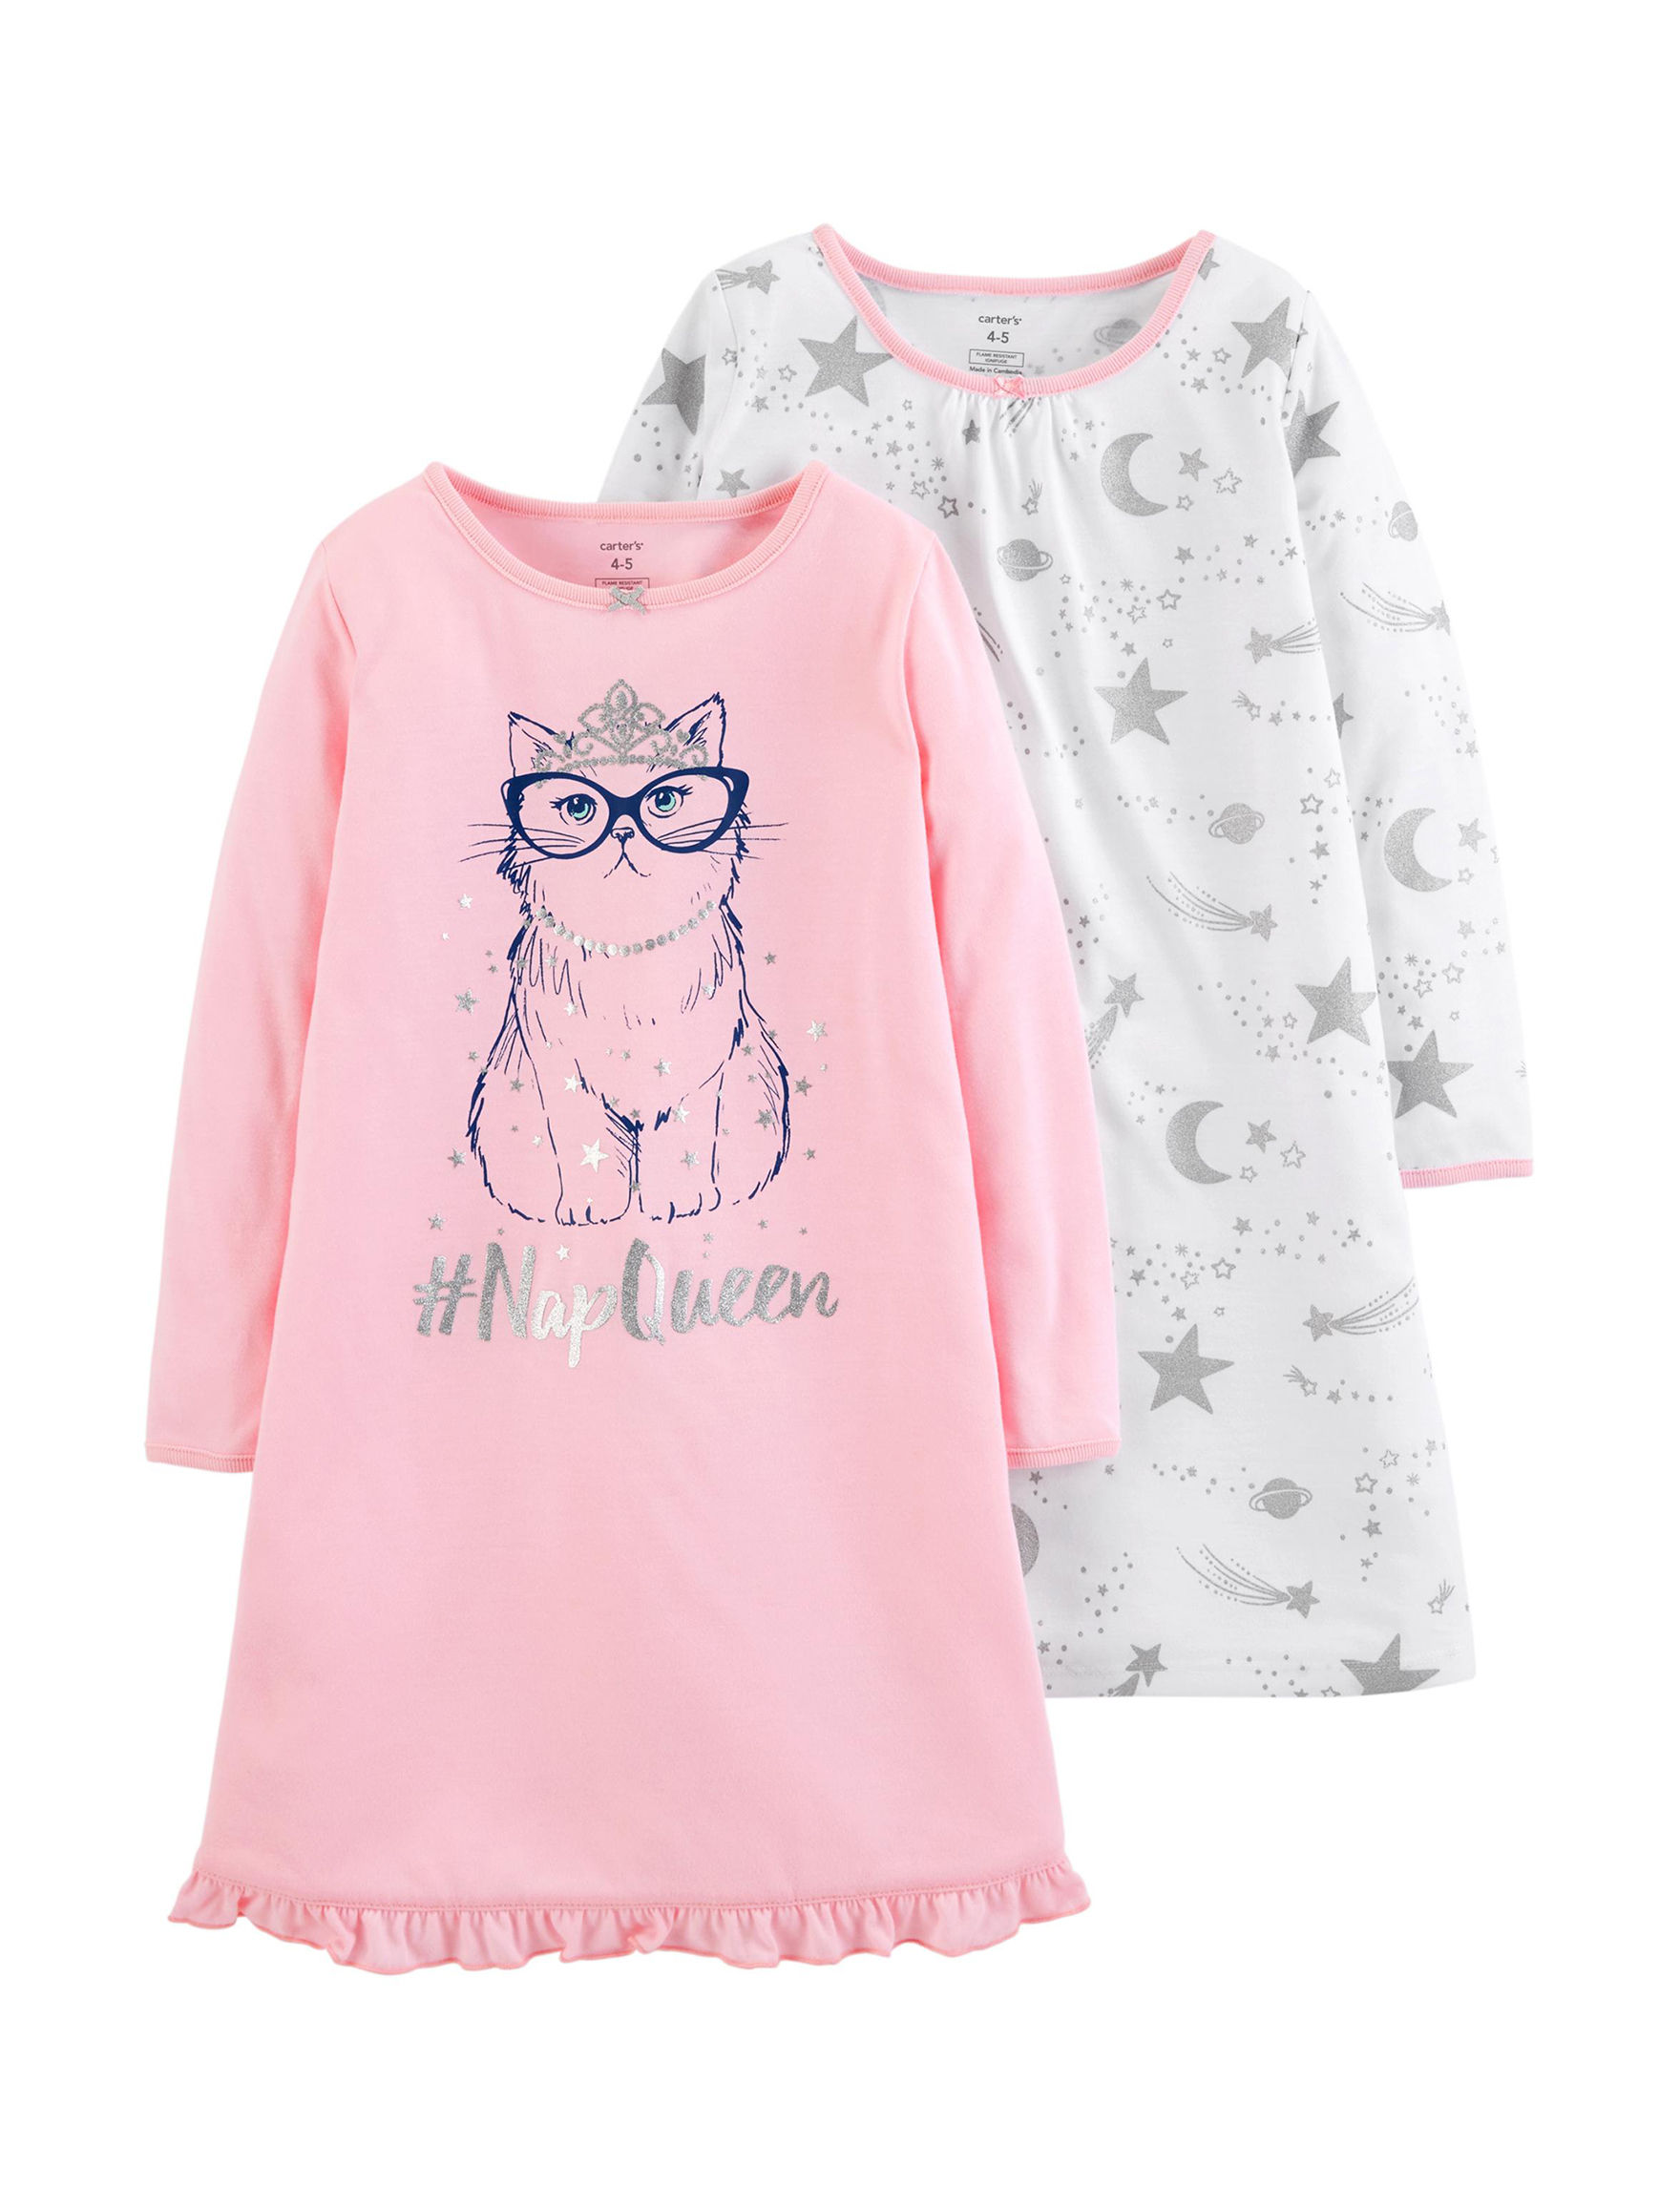 Carter's Pink/ White/ Grey Nightgowns & Sleep Shirts